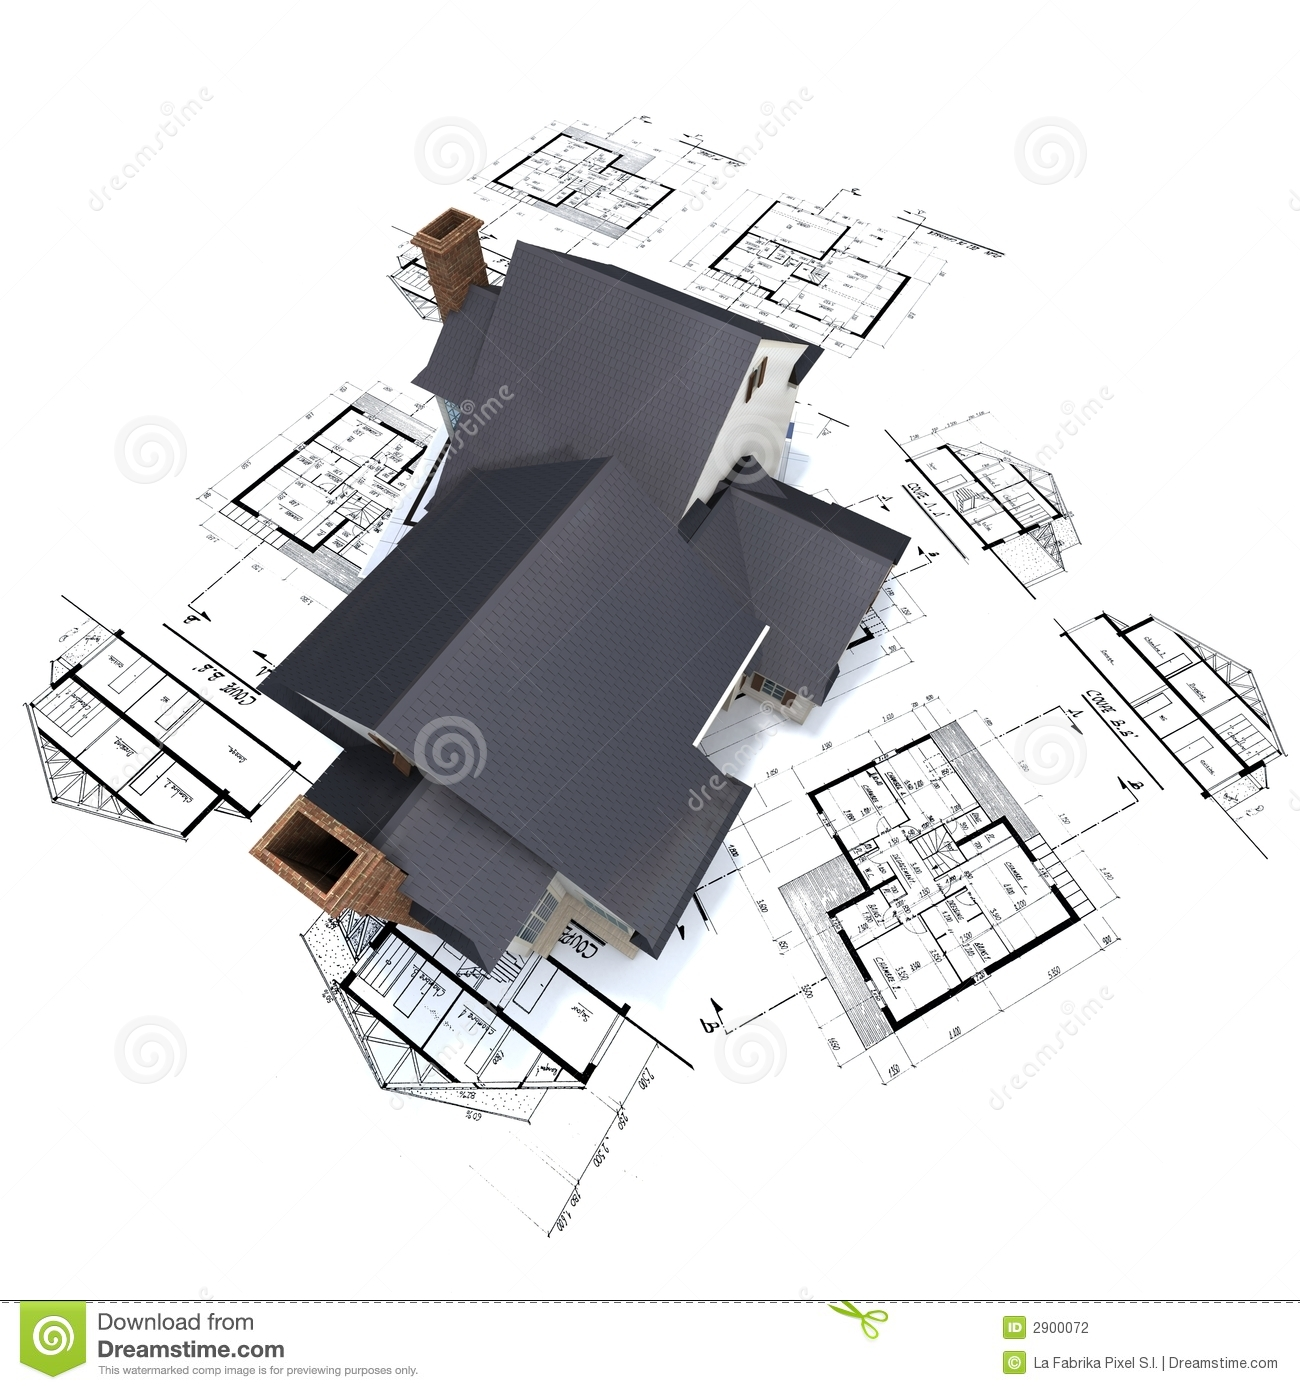 Residential house on plans 3 stock illustration image for Stock house plans